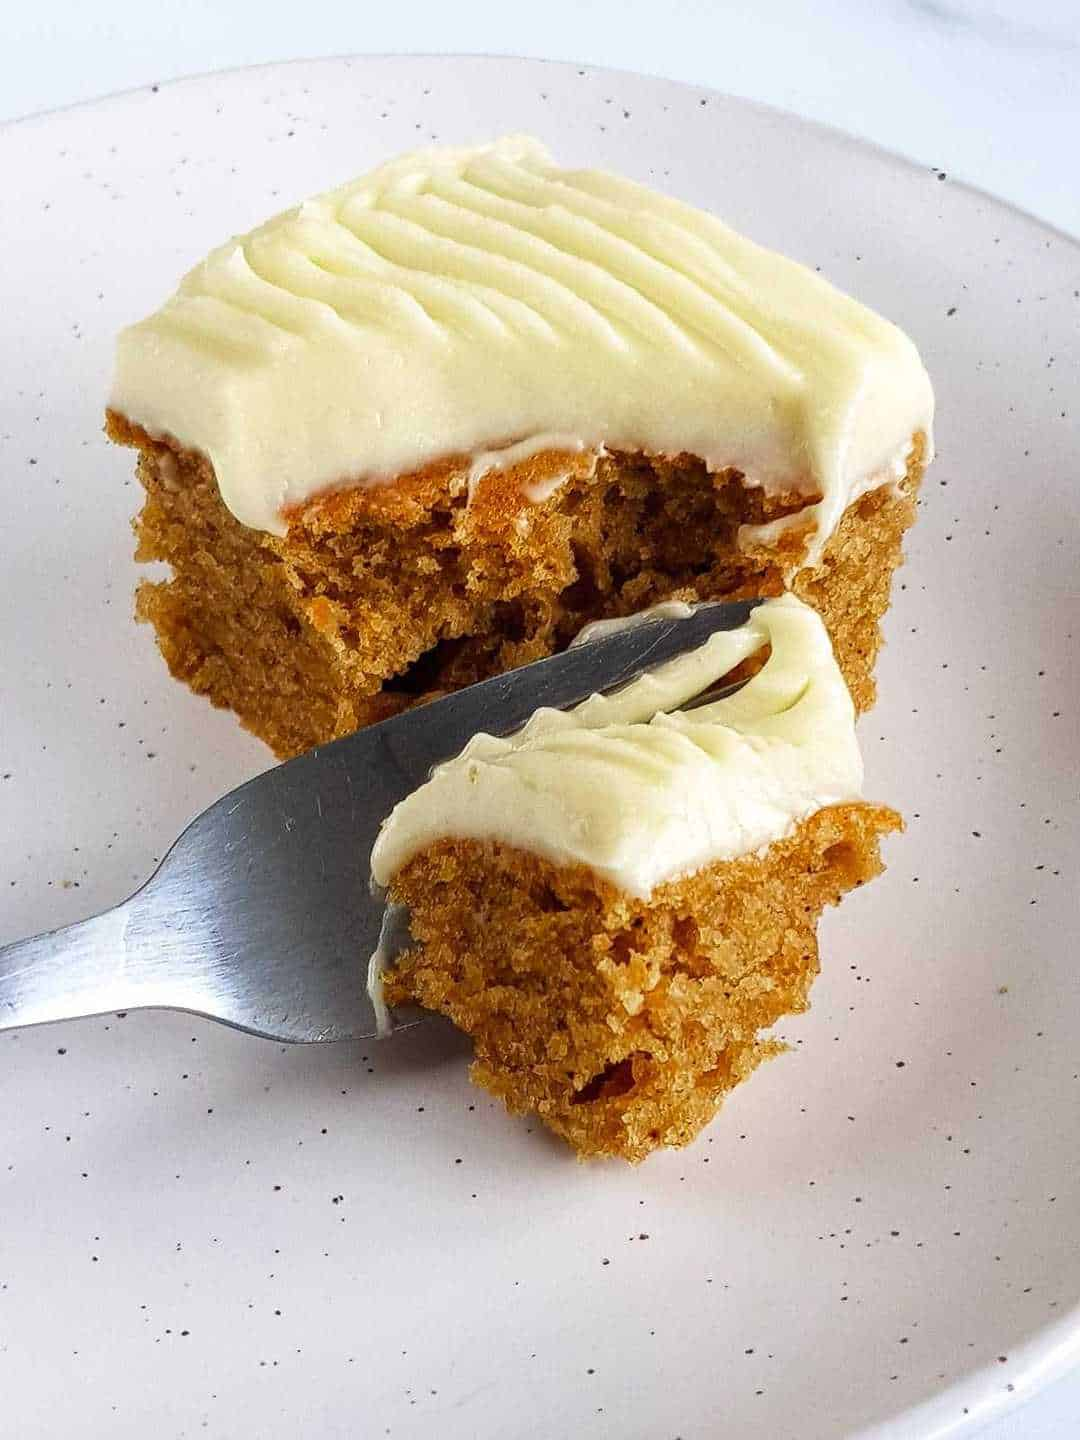 Pumpkin spice cake on a plate, with a fork cutting of a piece.